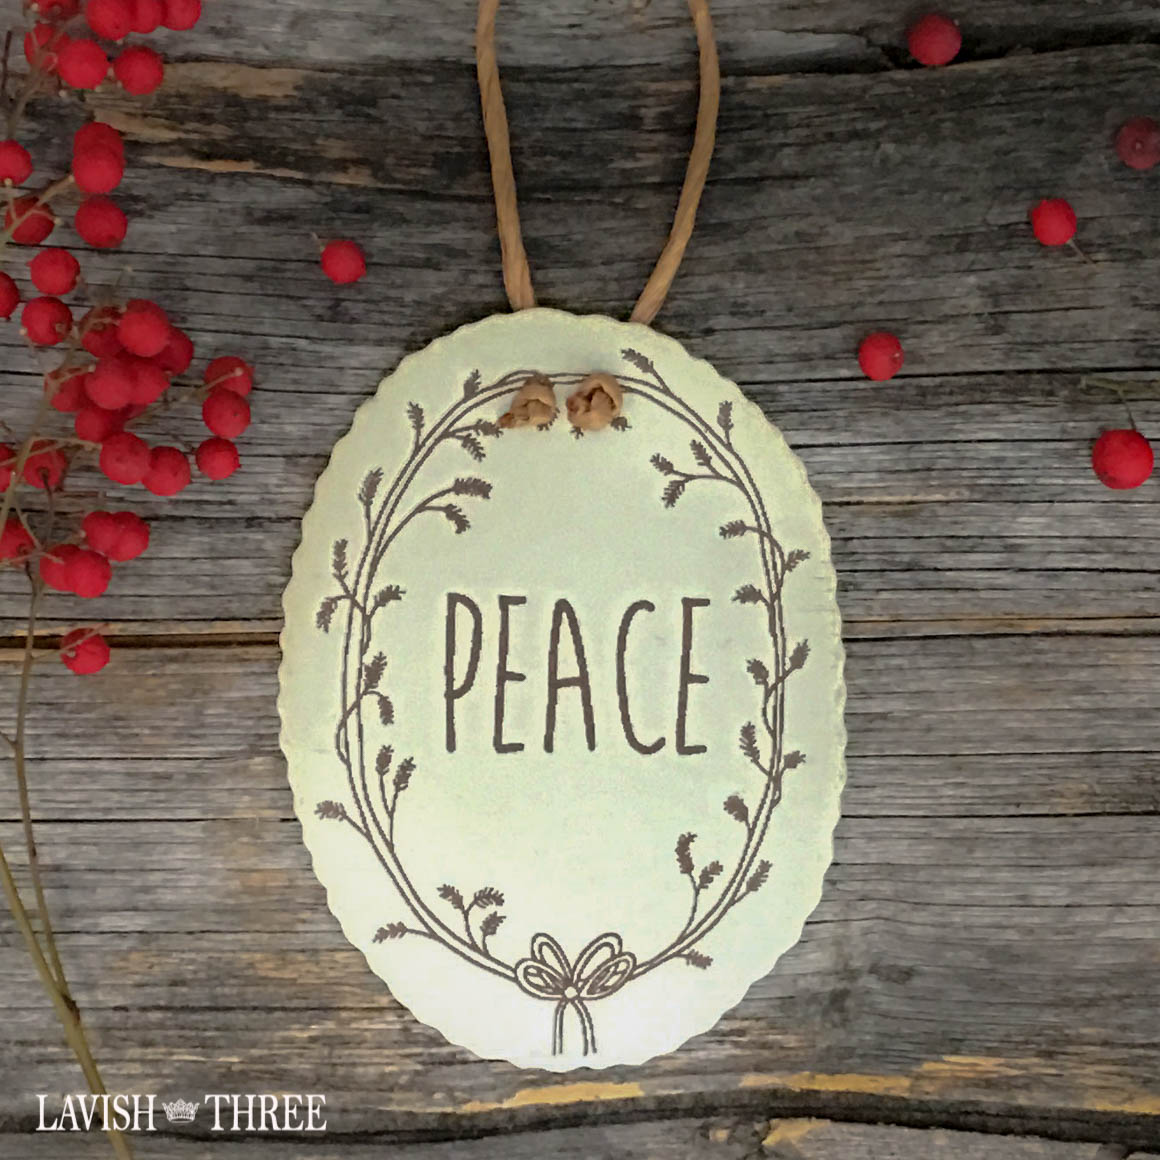 Tin holiday christmas tree ornaments gift tag in Noel, Peace & Joy lavish three 3